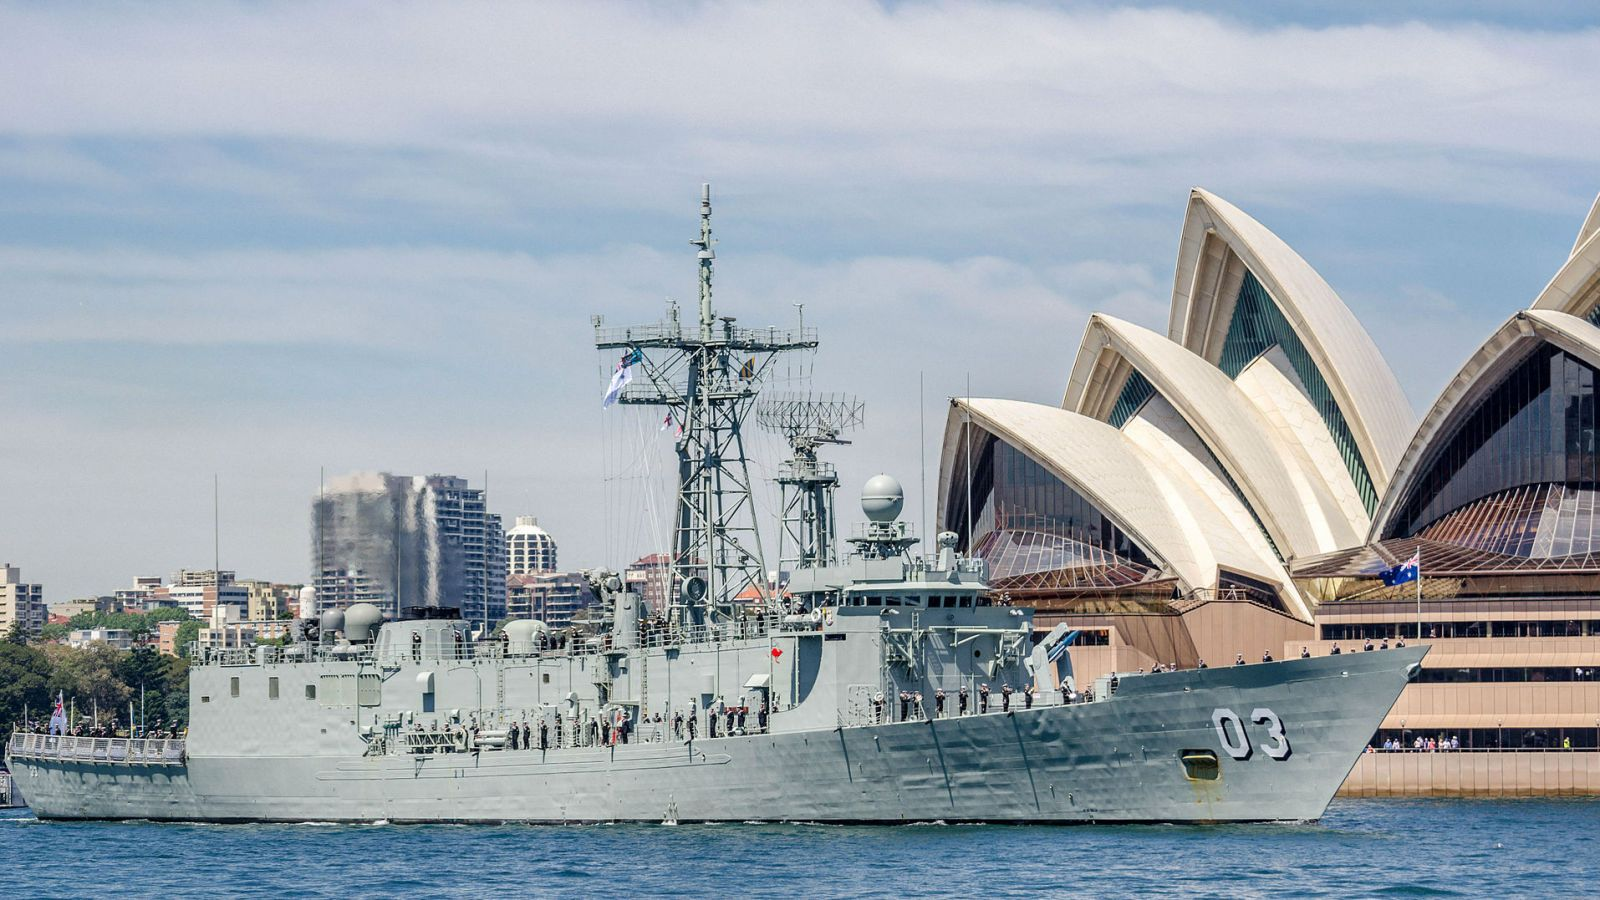 HMAS Sydney Towed Away for Recycling